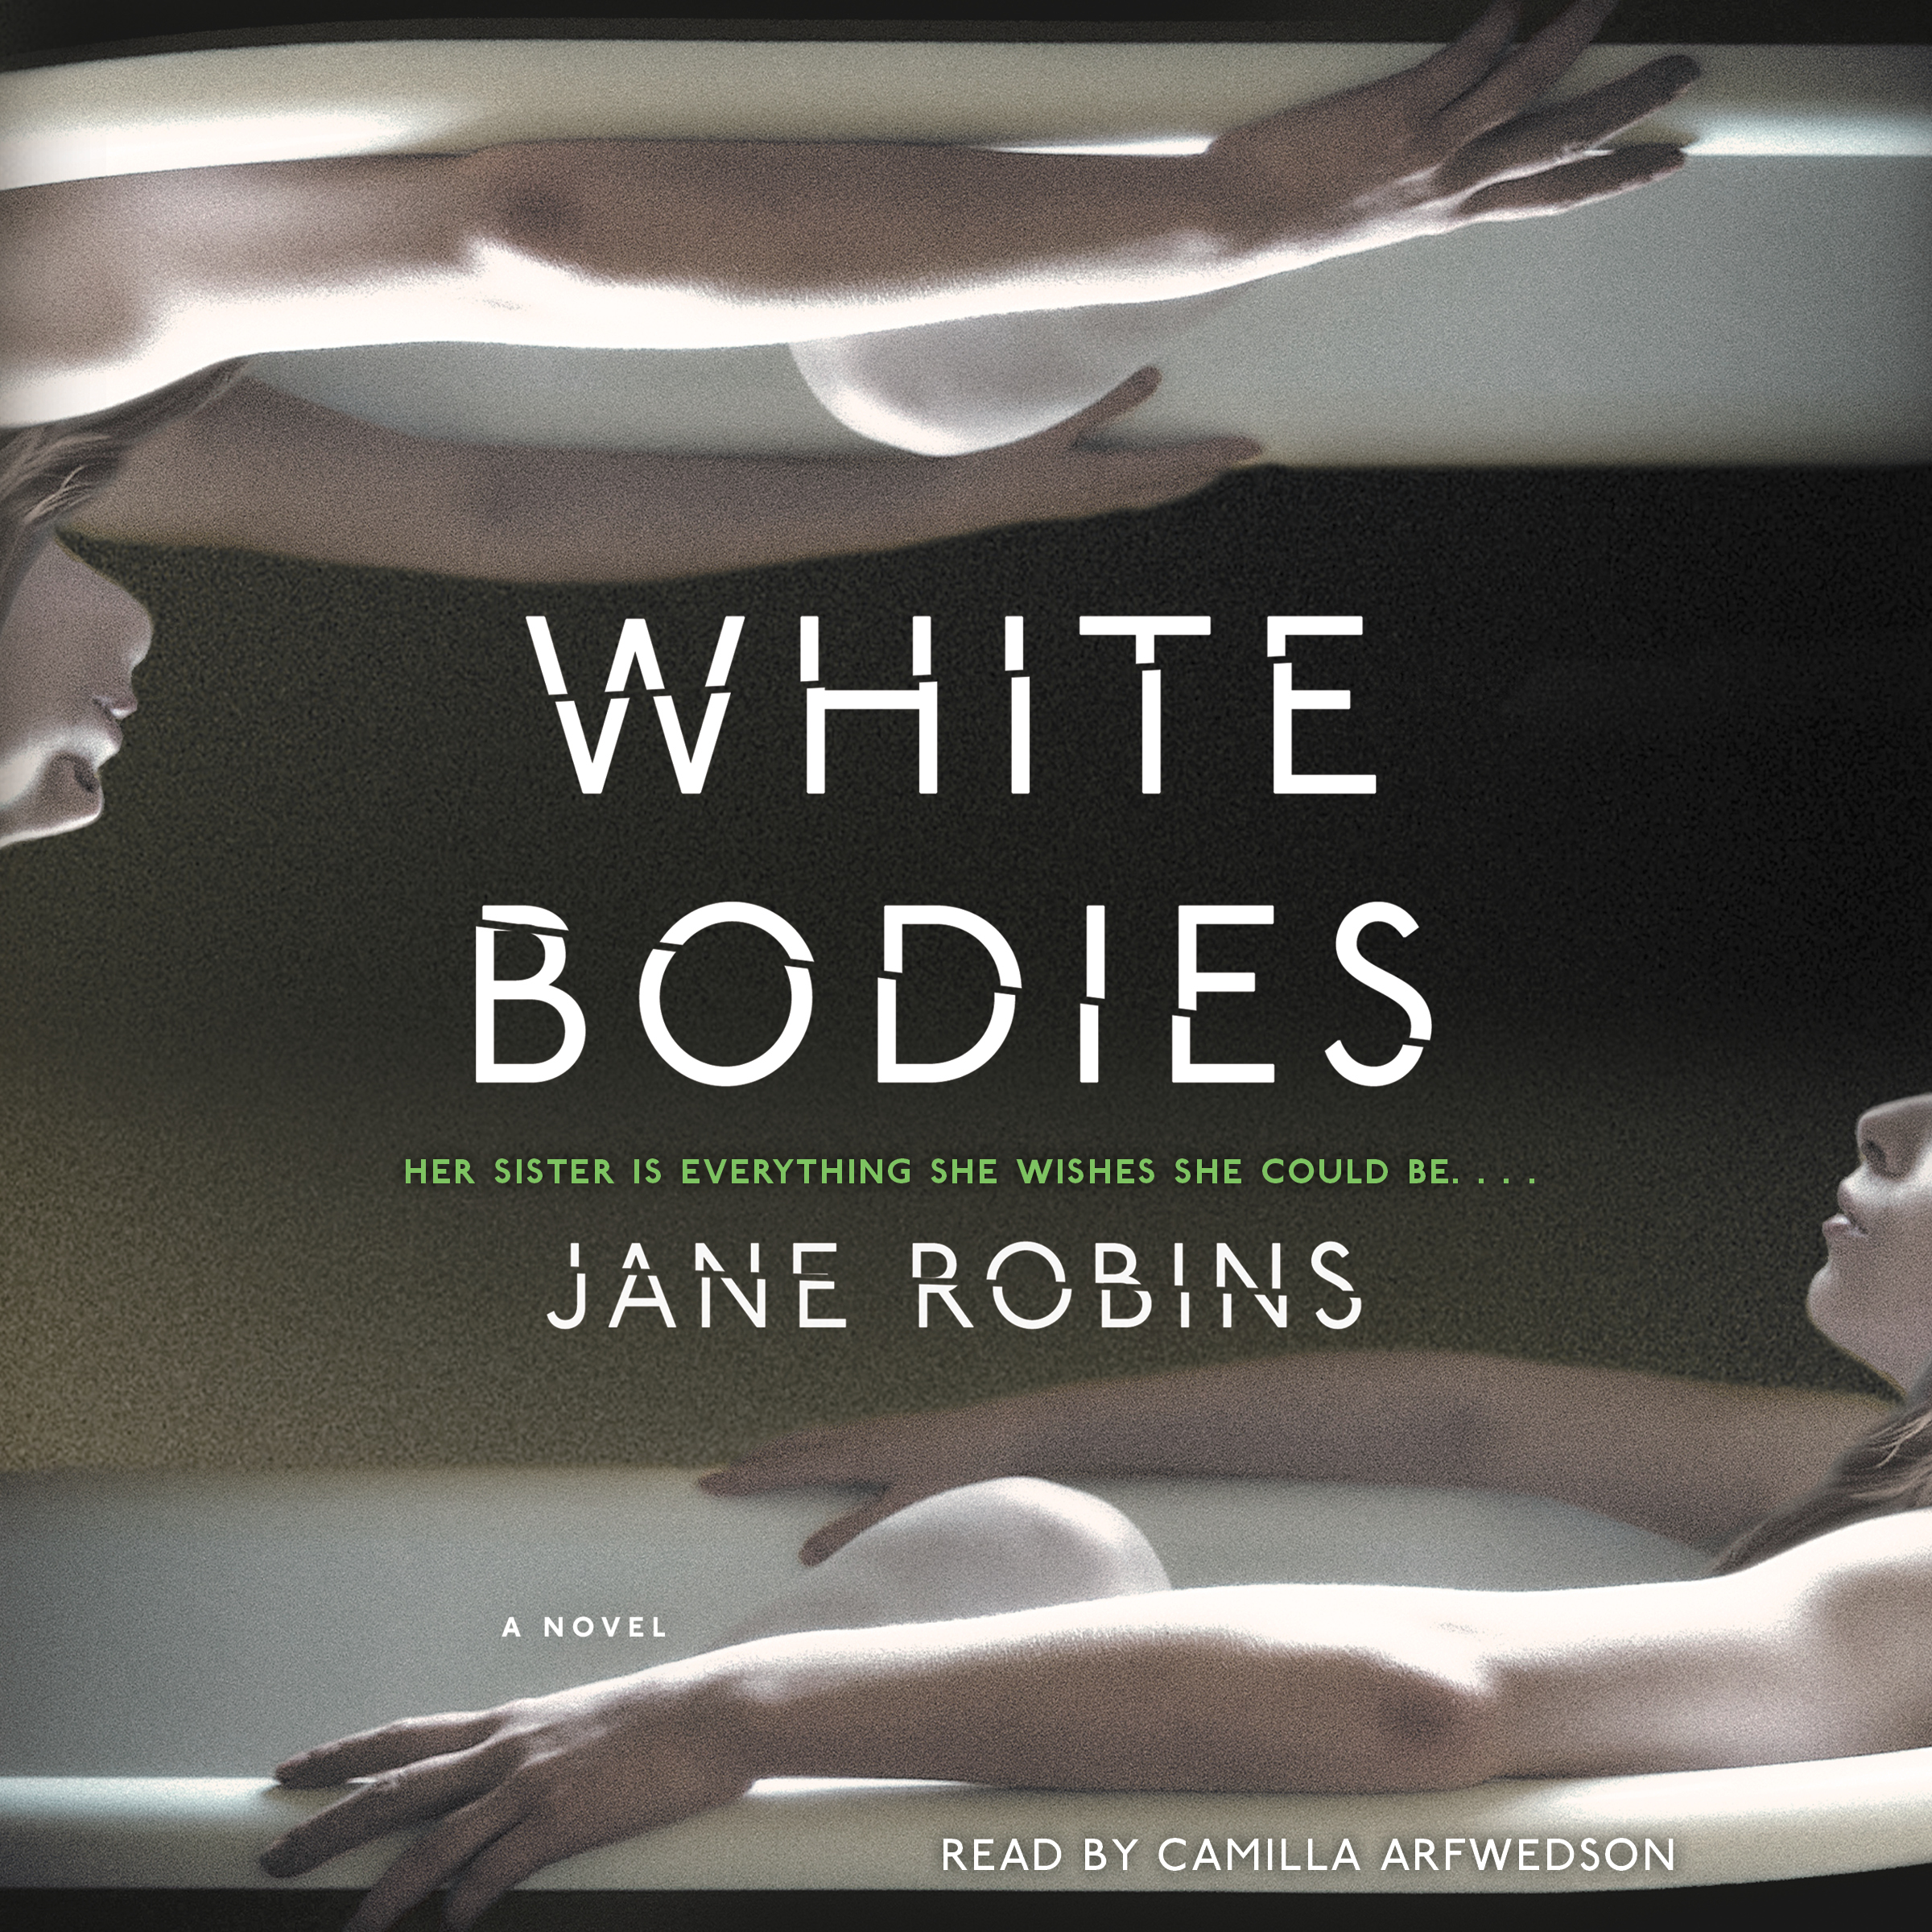 White bodies 9781508243915 hr